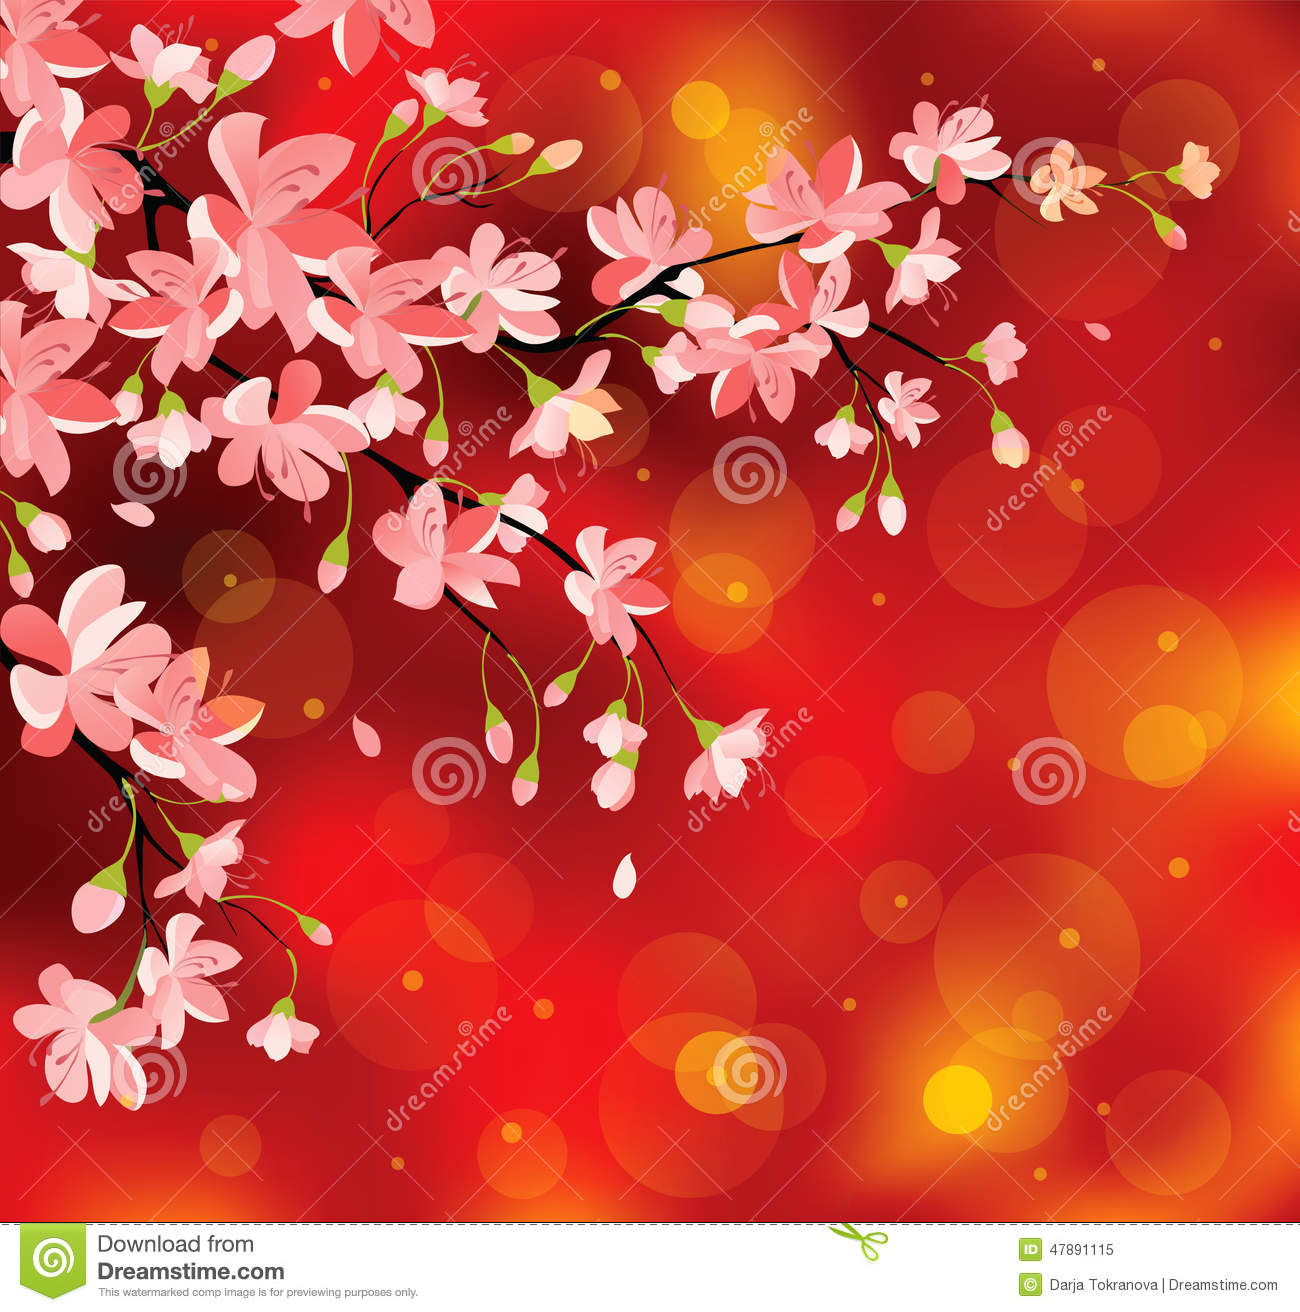 chinese new year flowers stock vector - image: 47891115